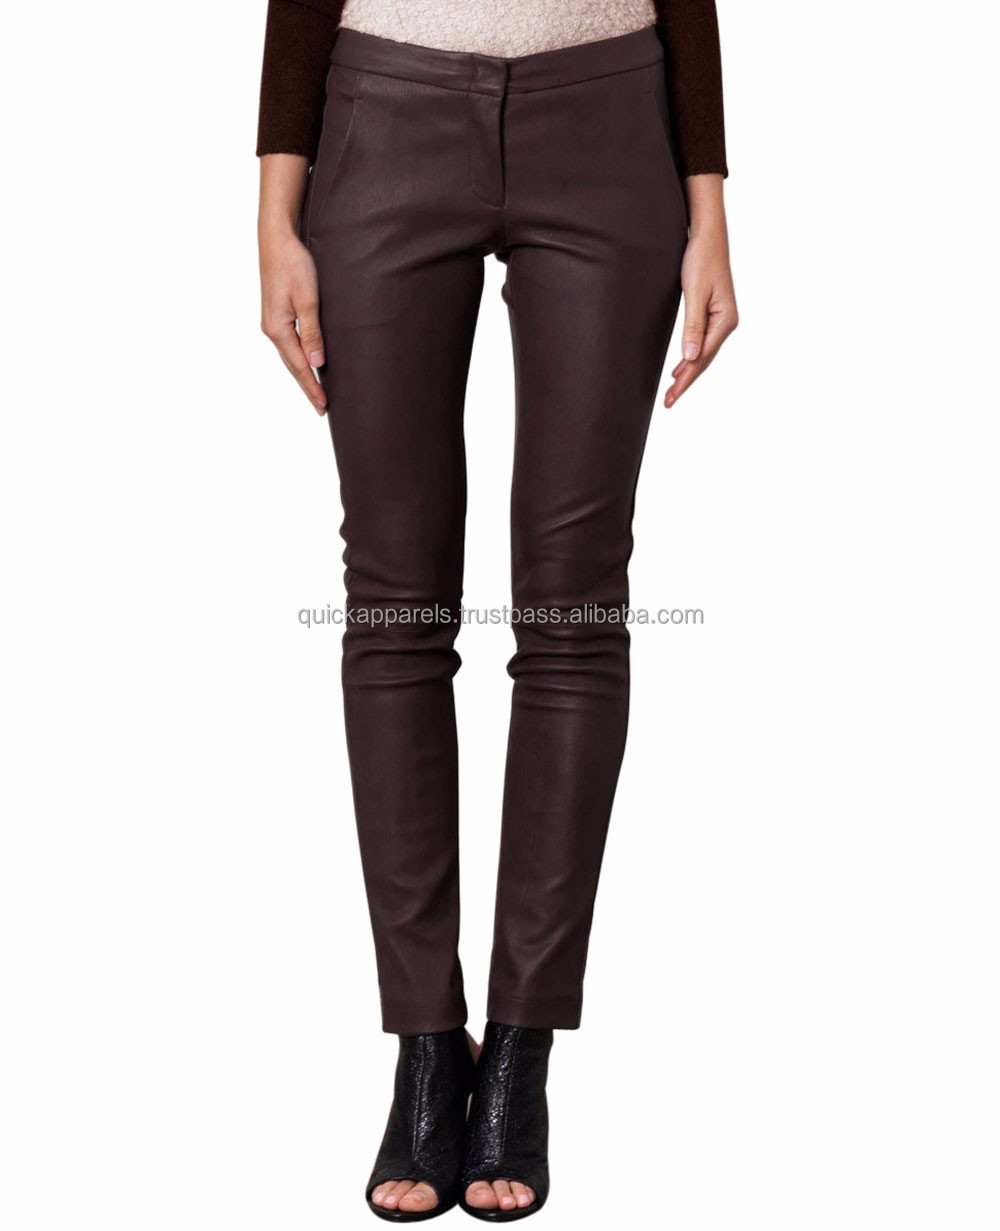 leather pants suppliers wholesale custom made womens leather pants baggy leather jogging pants